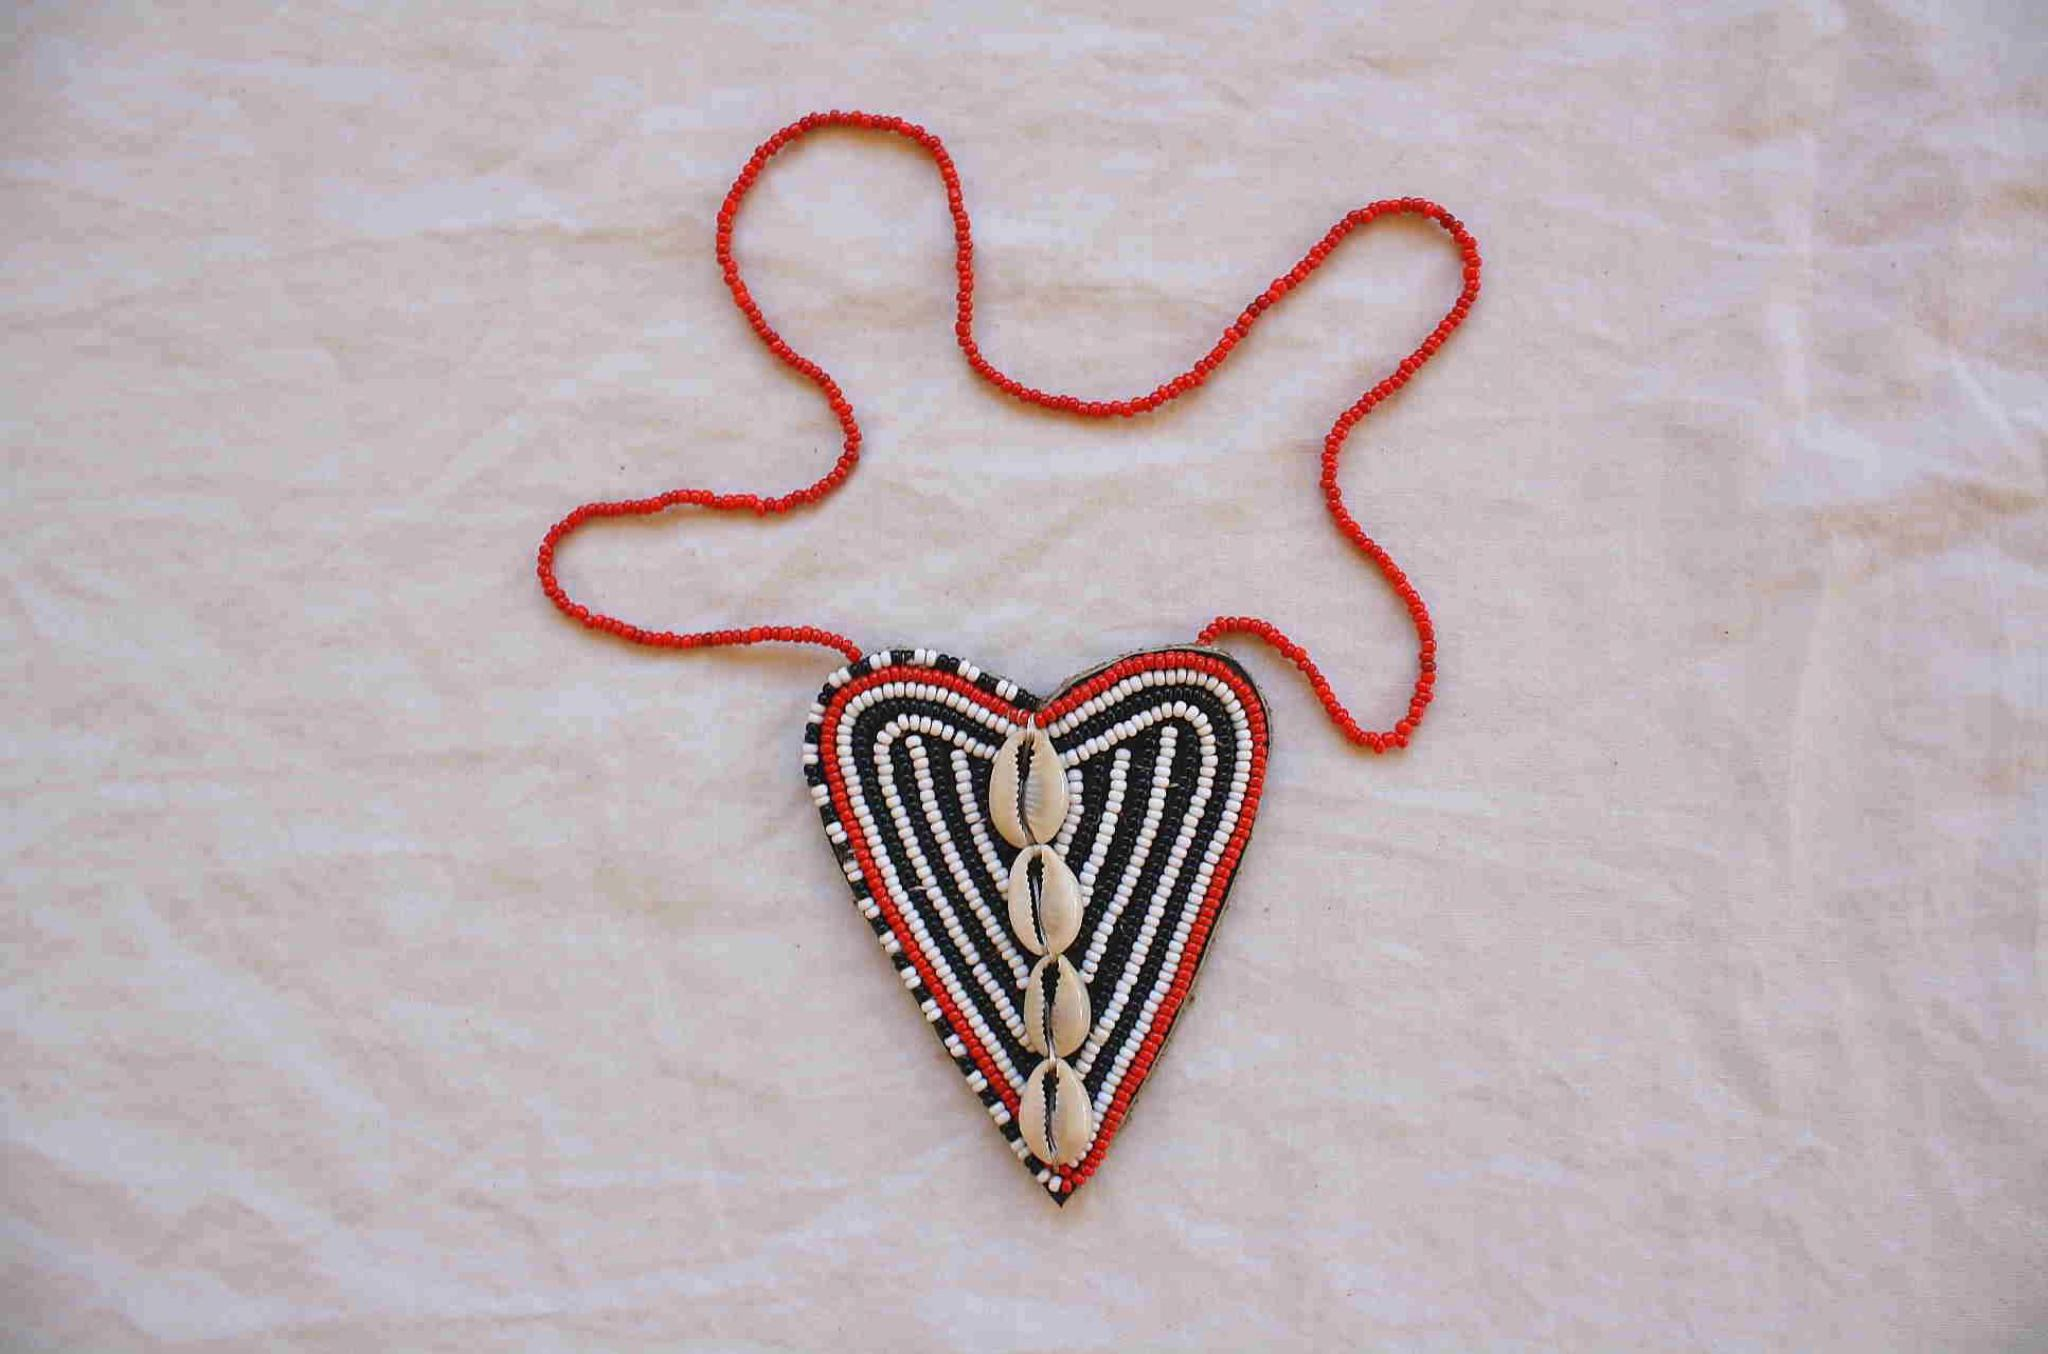 Heart_shelled_Necklace_–_007